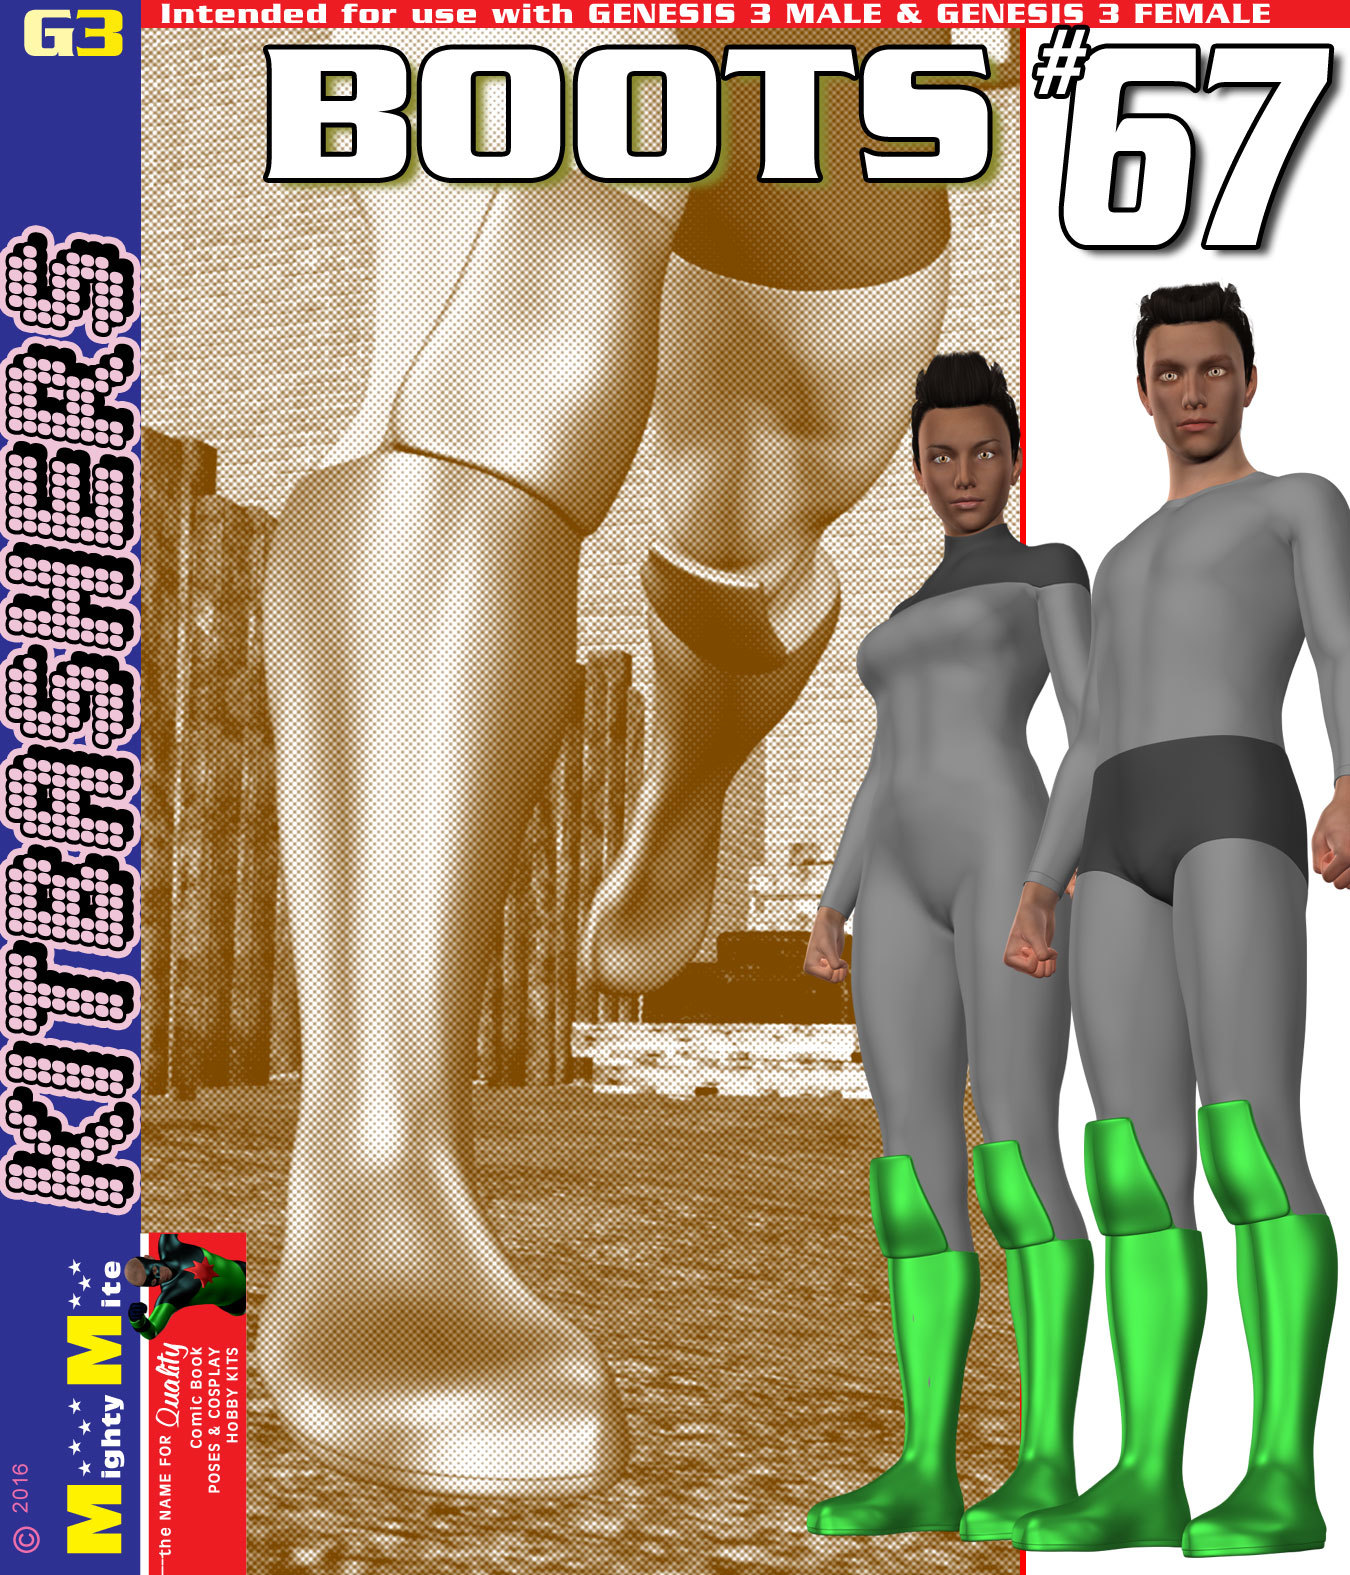 Boots 067 MMKBG3 by MightyMite